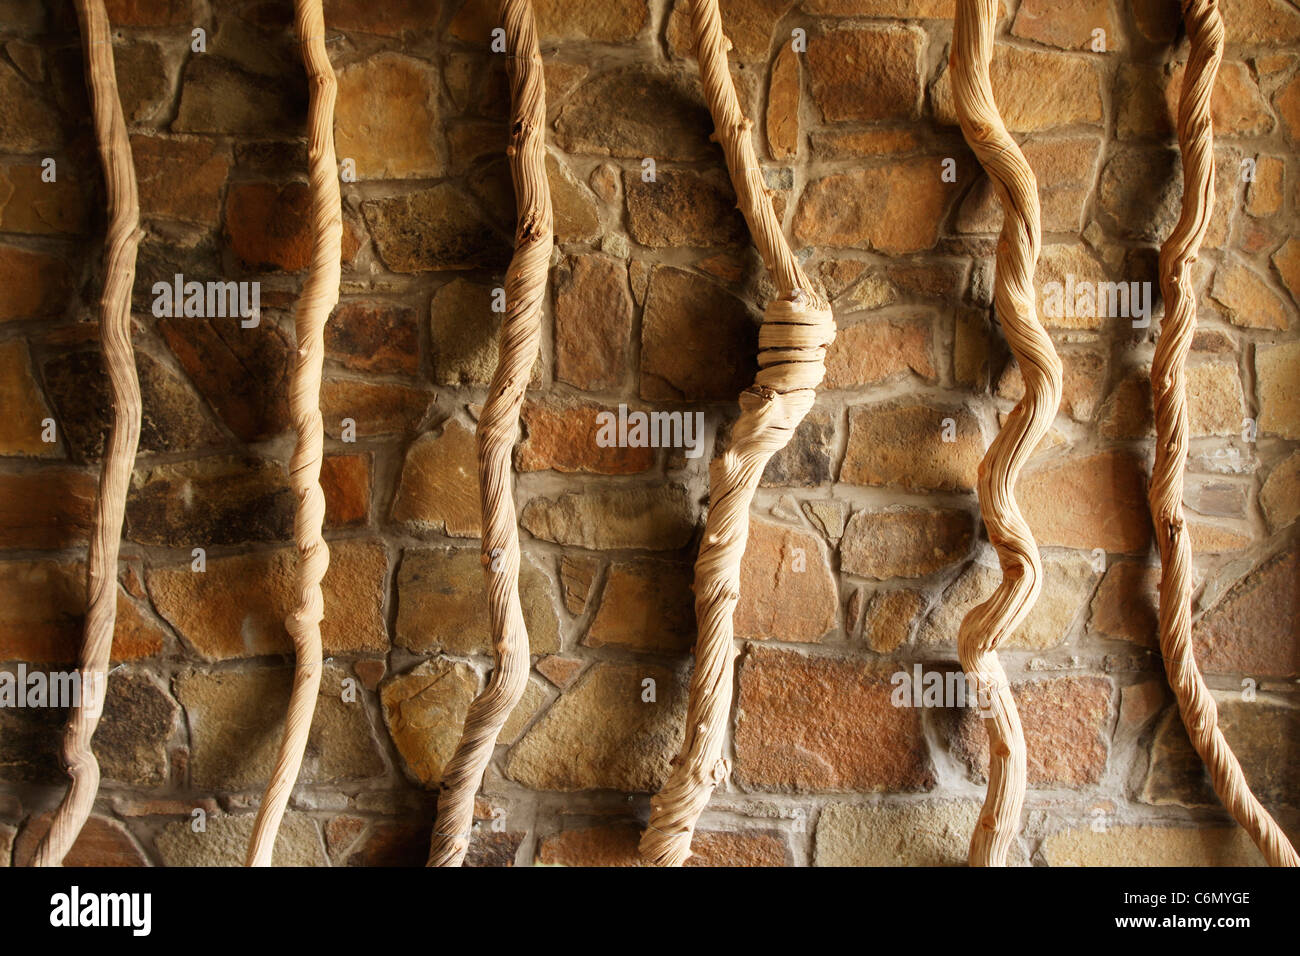 Twisted ropes hanging against a stone wall - Stock Image